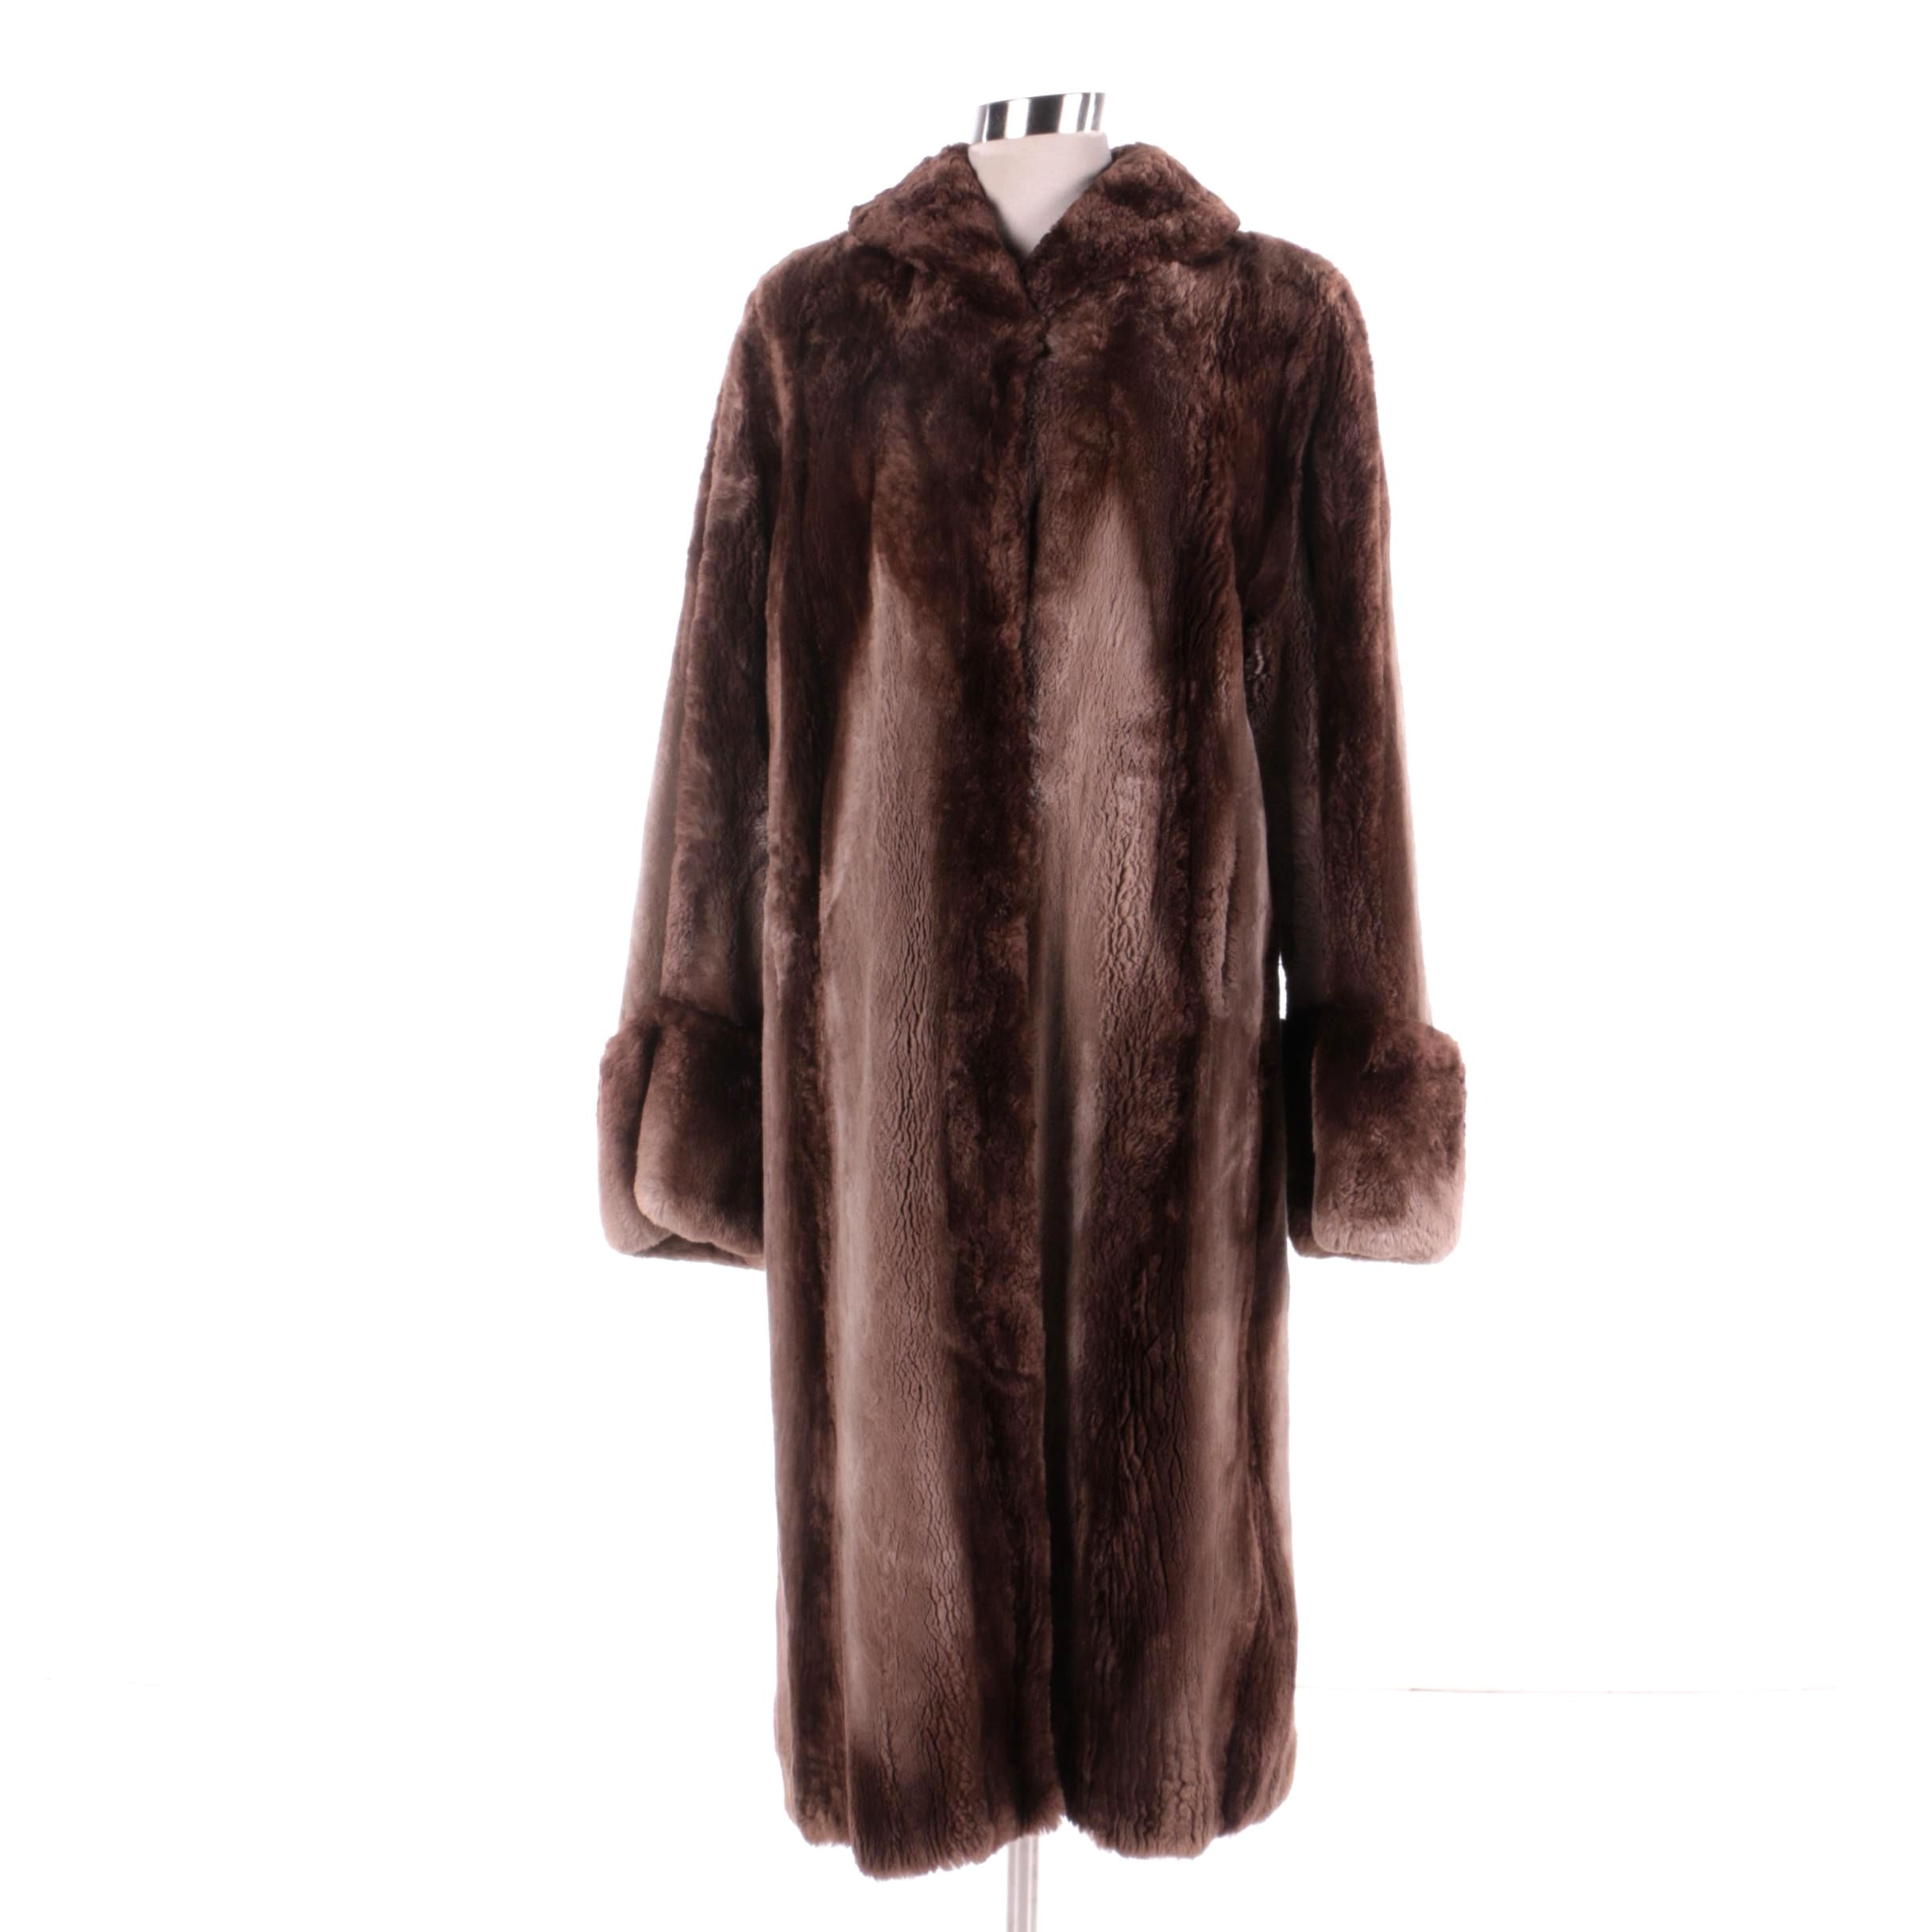 Women's Vintage Brown Sheared Beaver Fur Coat